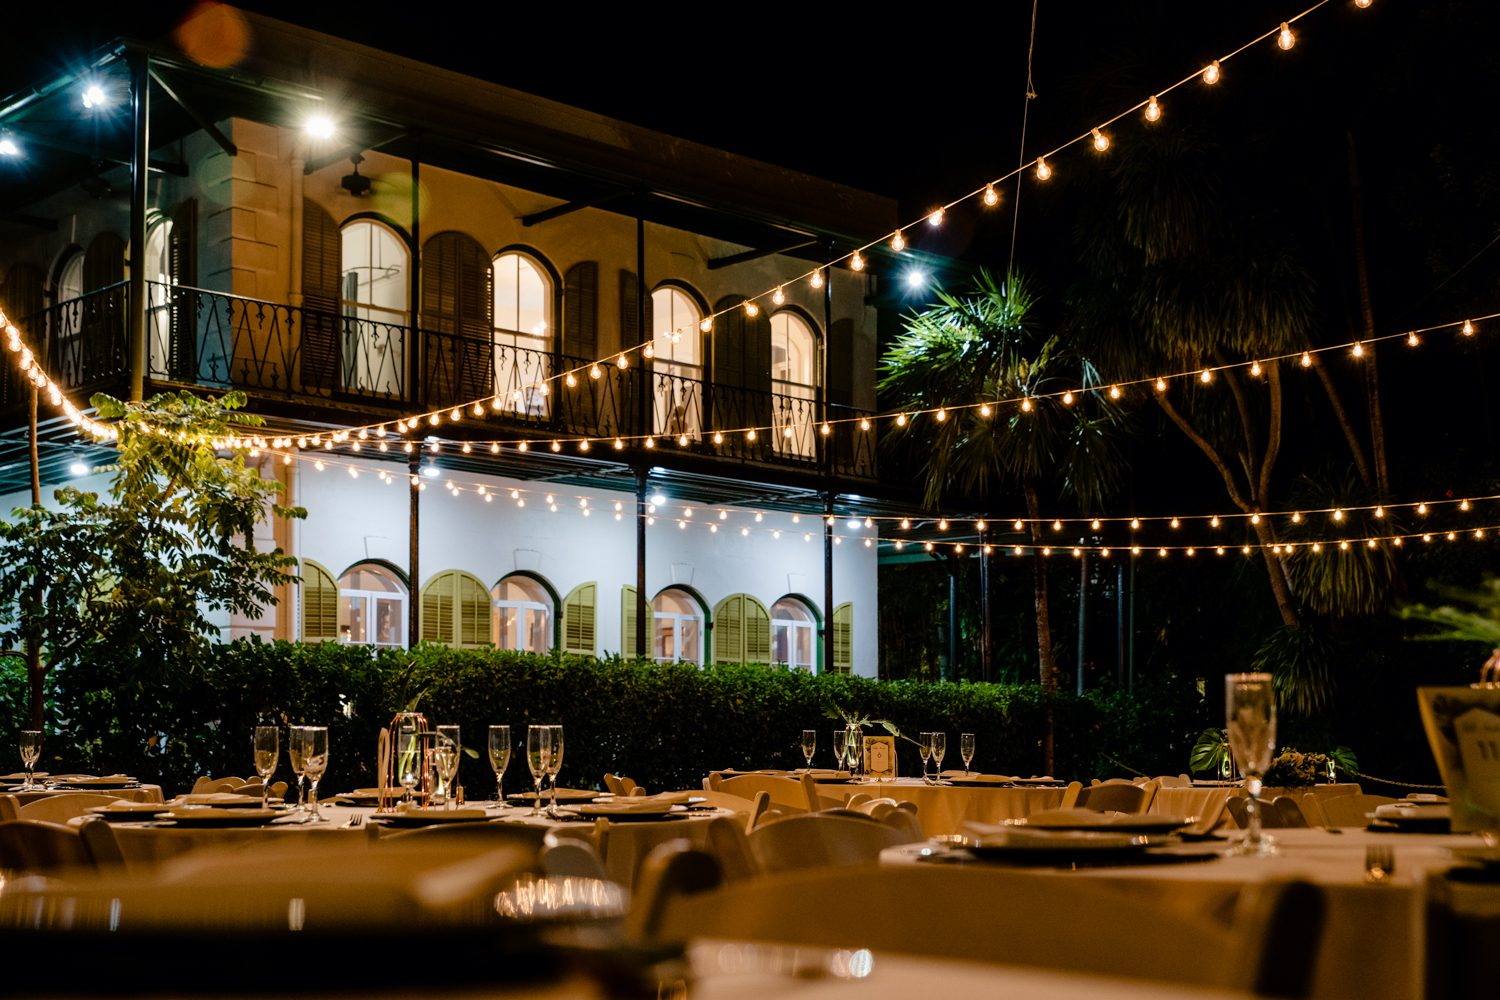 Table settings for a wedding reception at hemingway house